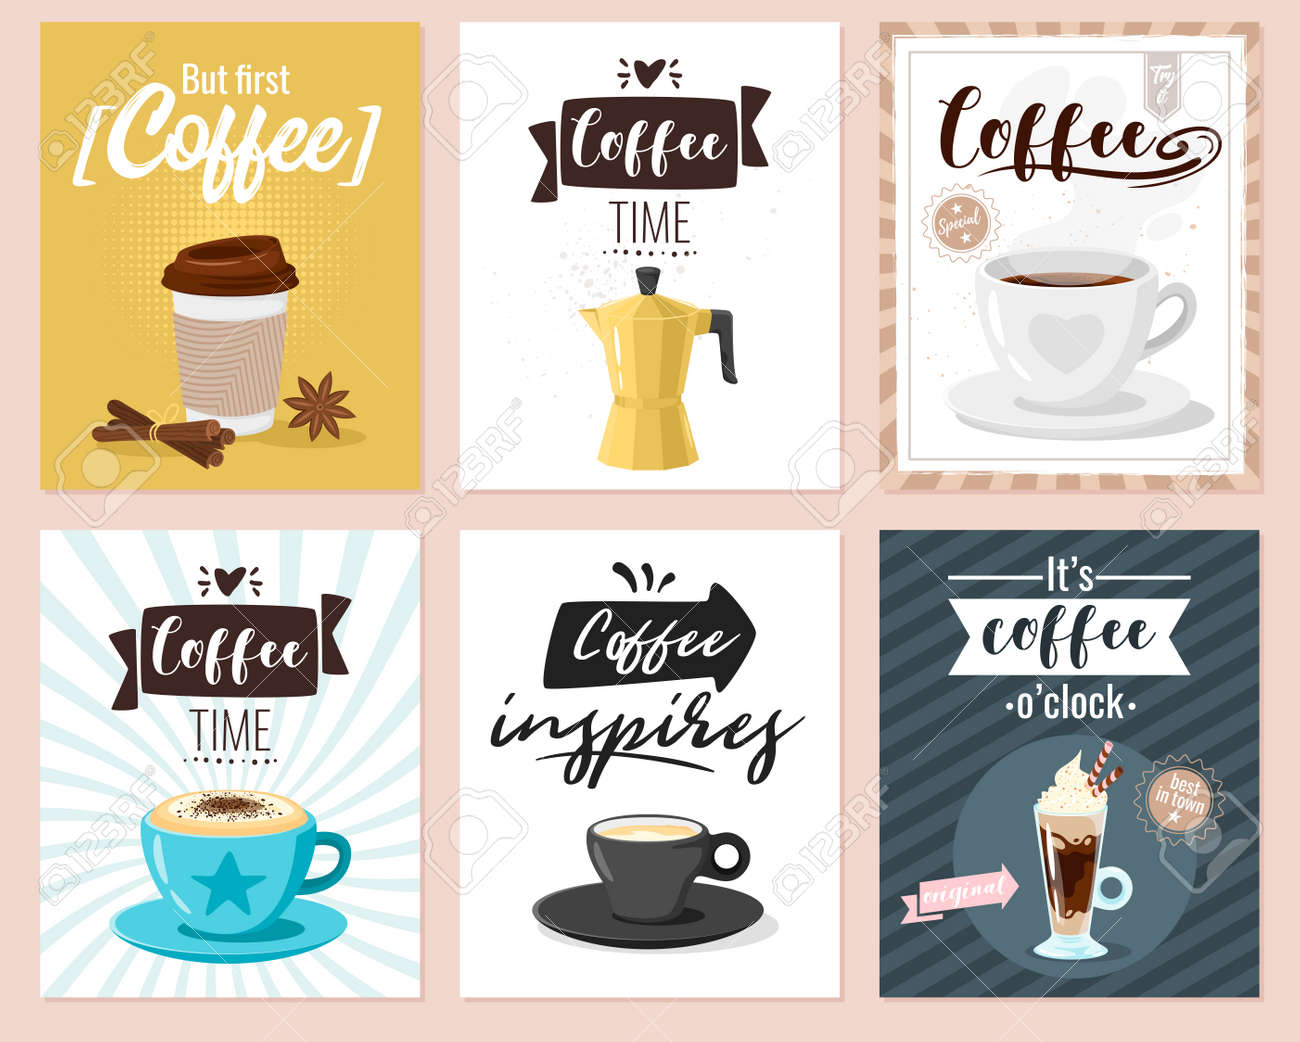 Coffee Shop Poster Template For Cafe Wall Design Print Lettering Royalty Free Cliparts Vectors And Stock Illustration Image 113507714